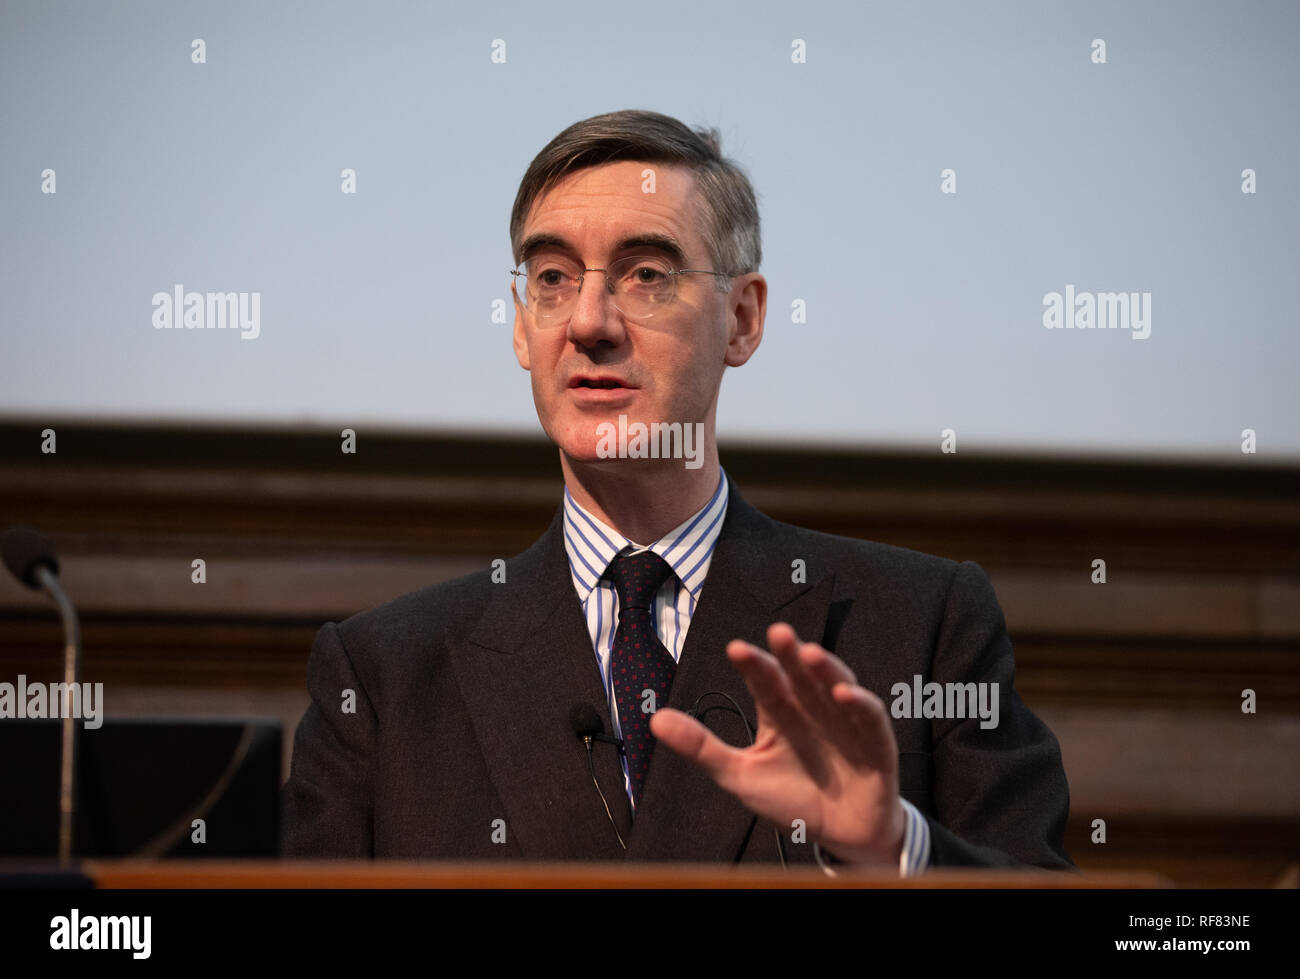 Jacob Rees-Mogg, who is a strong Leave campaigner, speaks at an event, organised by The Bruges Group,Jacob R about his plans for Britain after Brexit. - Stock Image